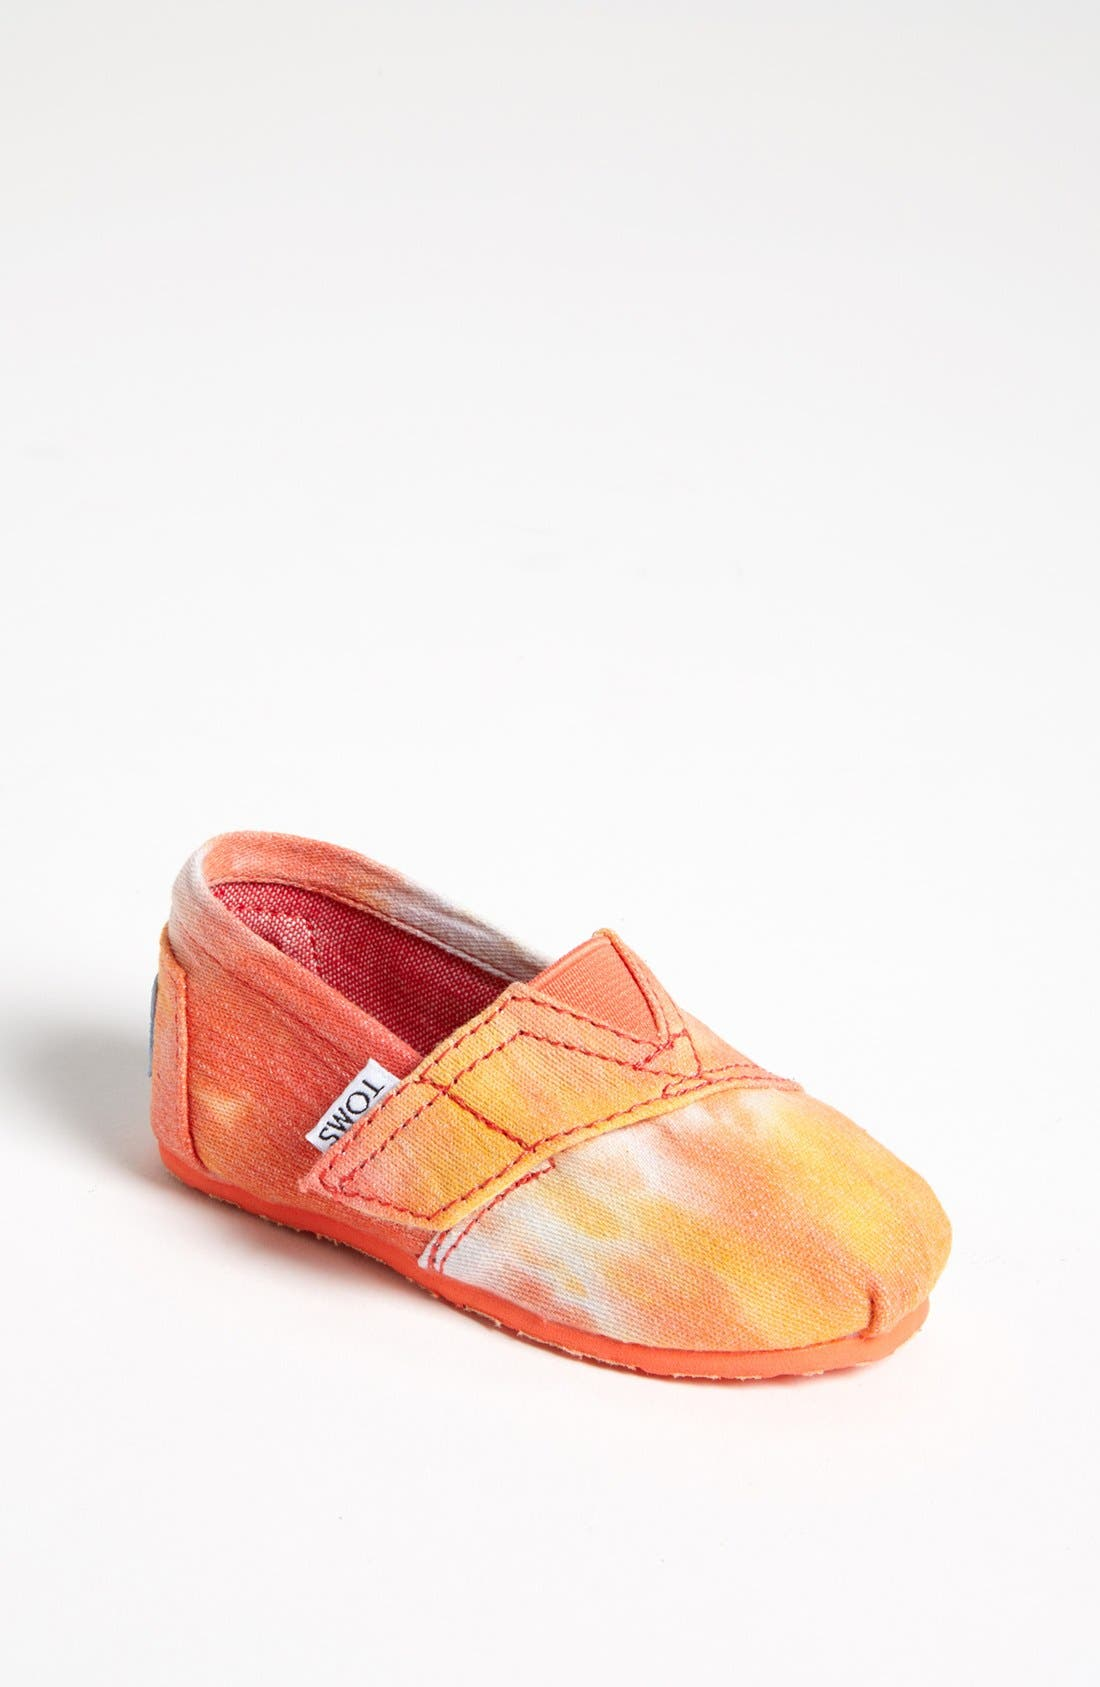 Alternate Image 1 Selected - TOMS 'Classic Tiny - Tie Dye' Slip-On (Baby, Walker & Toddler) (Nordstrom Exclusive)